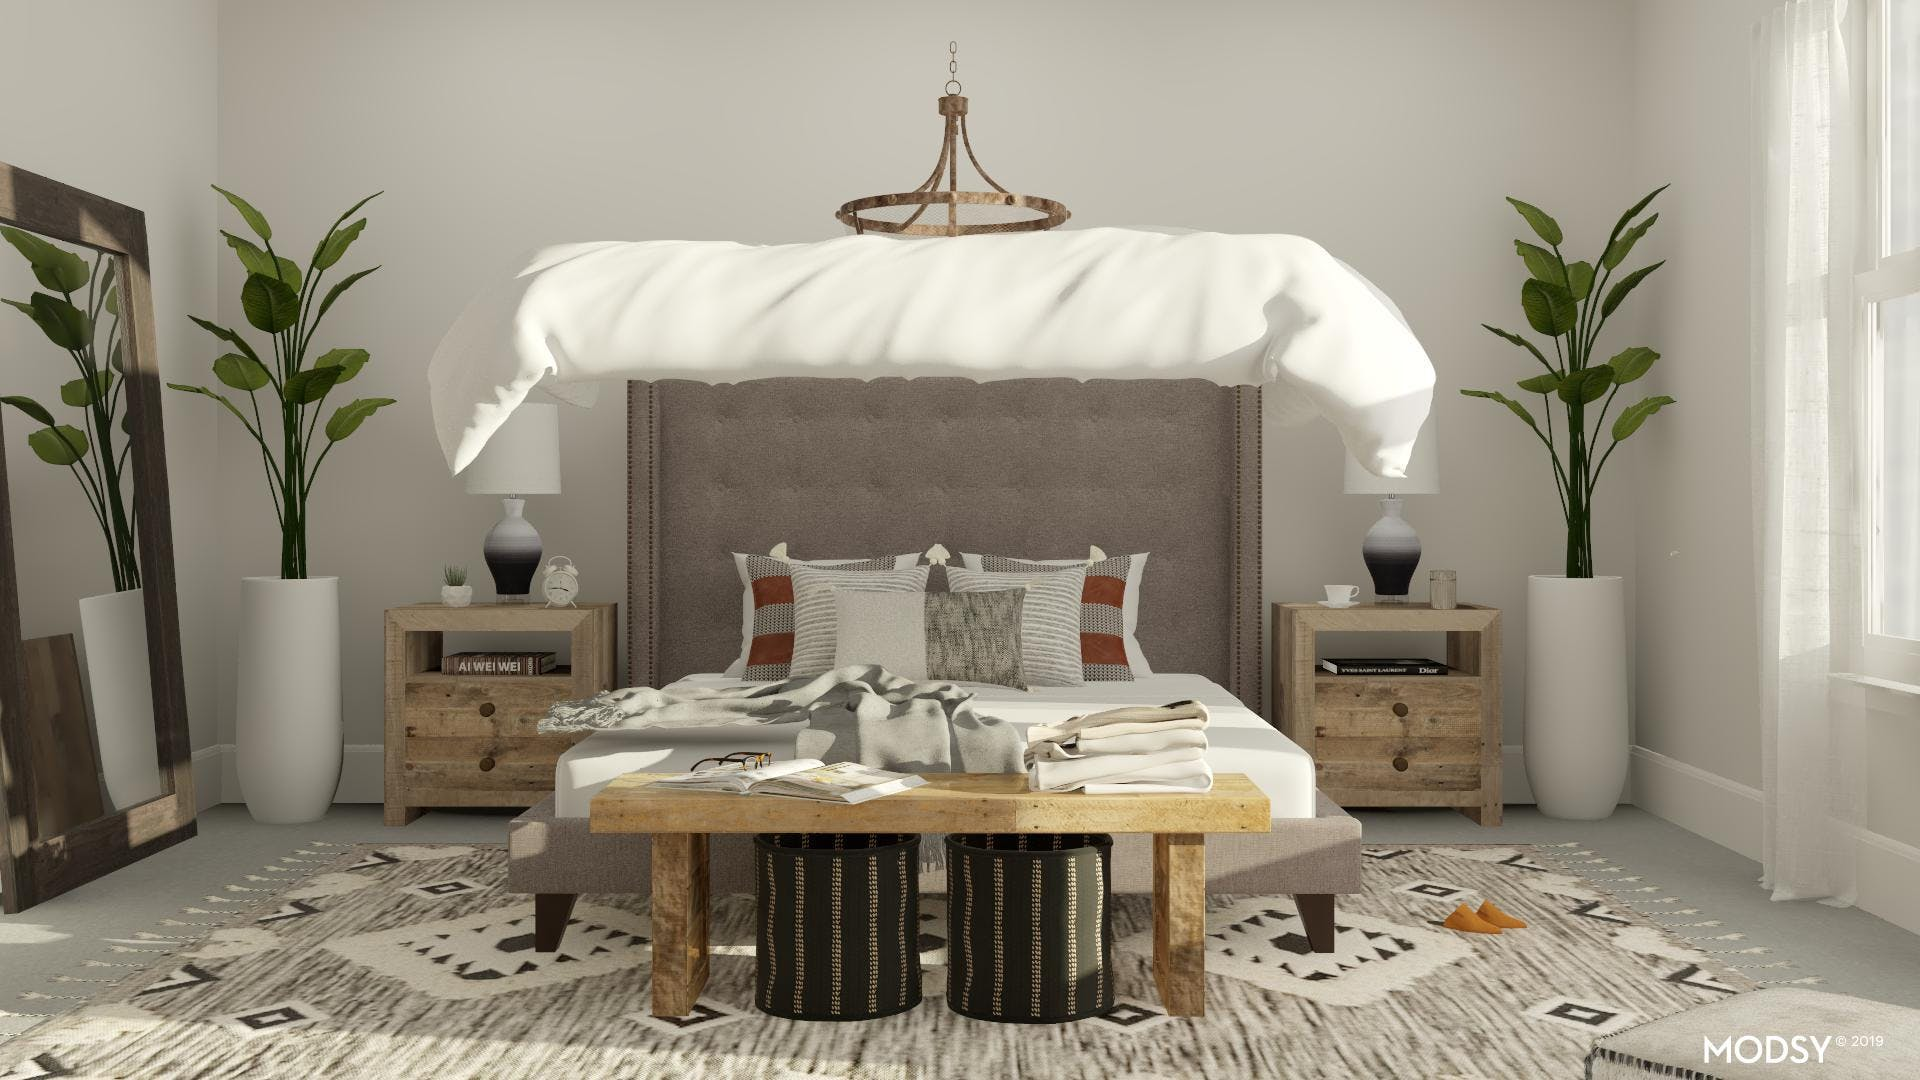 Rustic Black and White Oasis